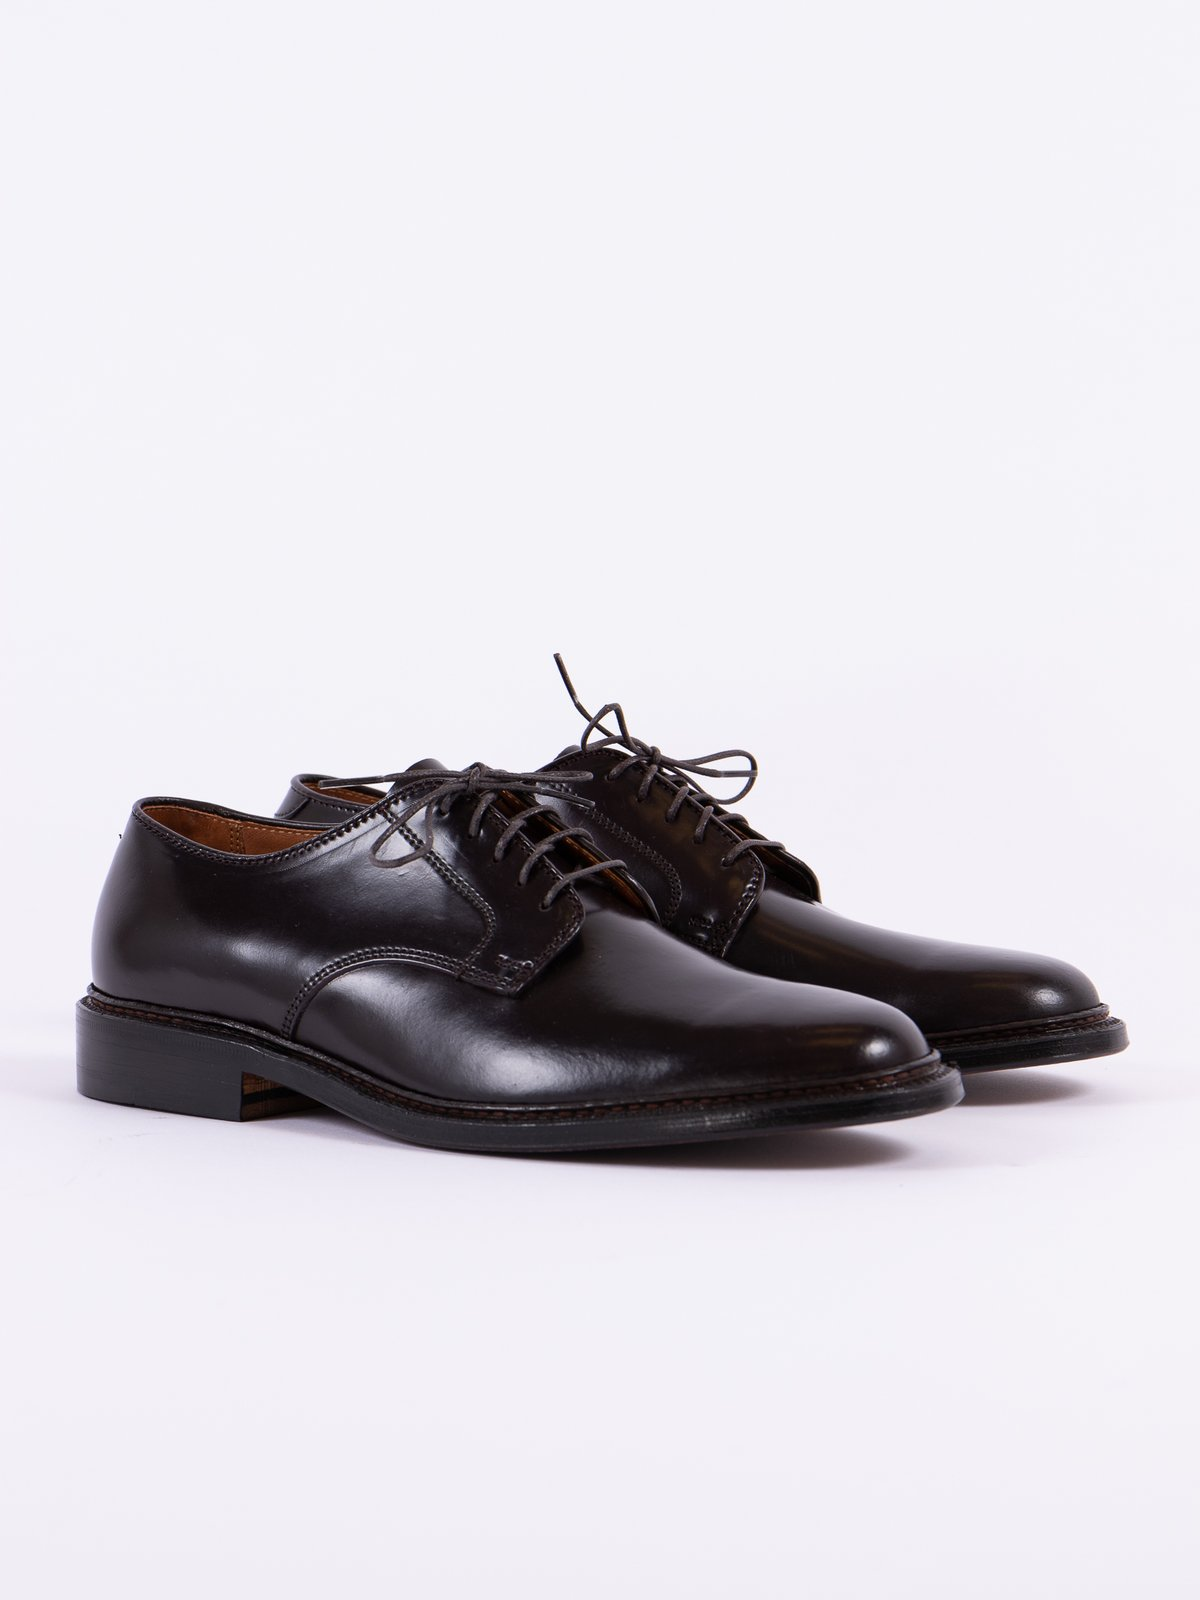 Color 8 Cordovan Plain Toe Blucher with Leather Sole - Image 1